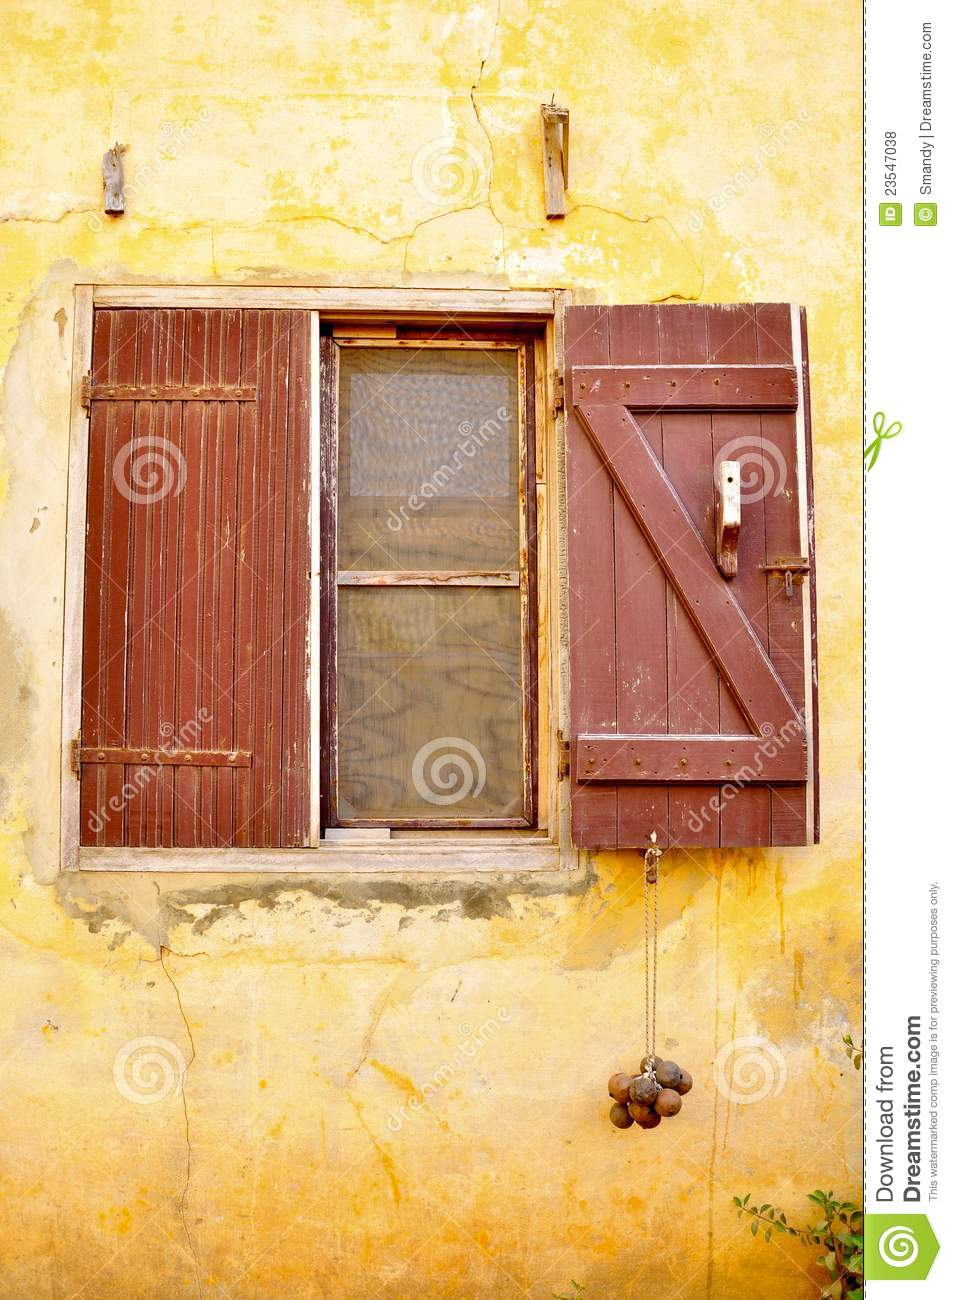 African Window With Korabani Hanging Stock Photo - Image of africa